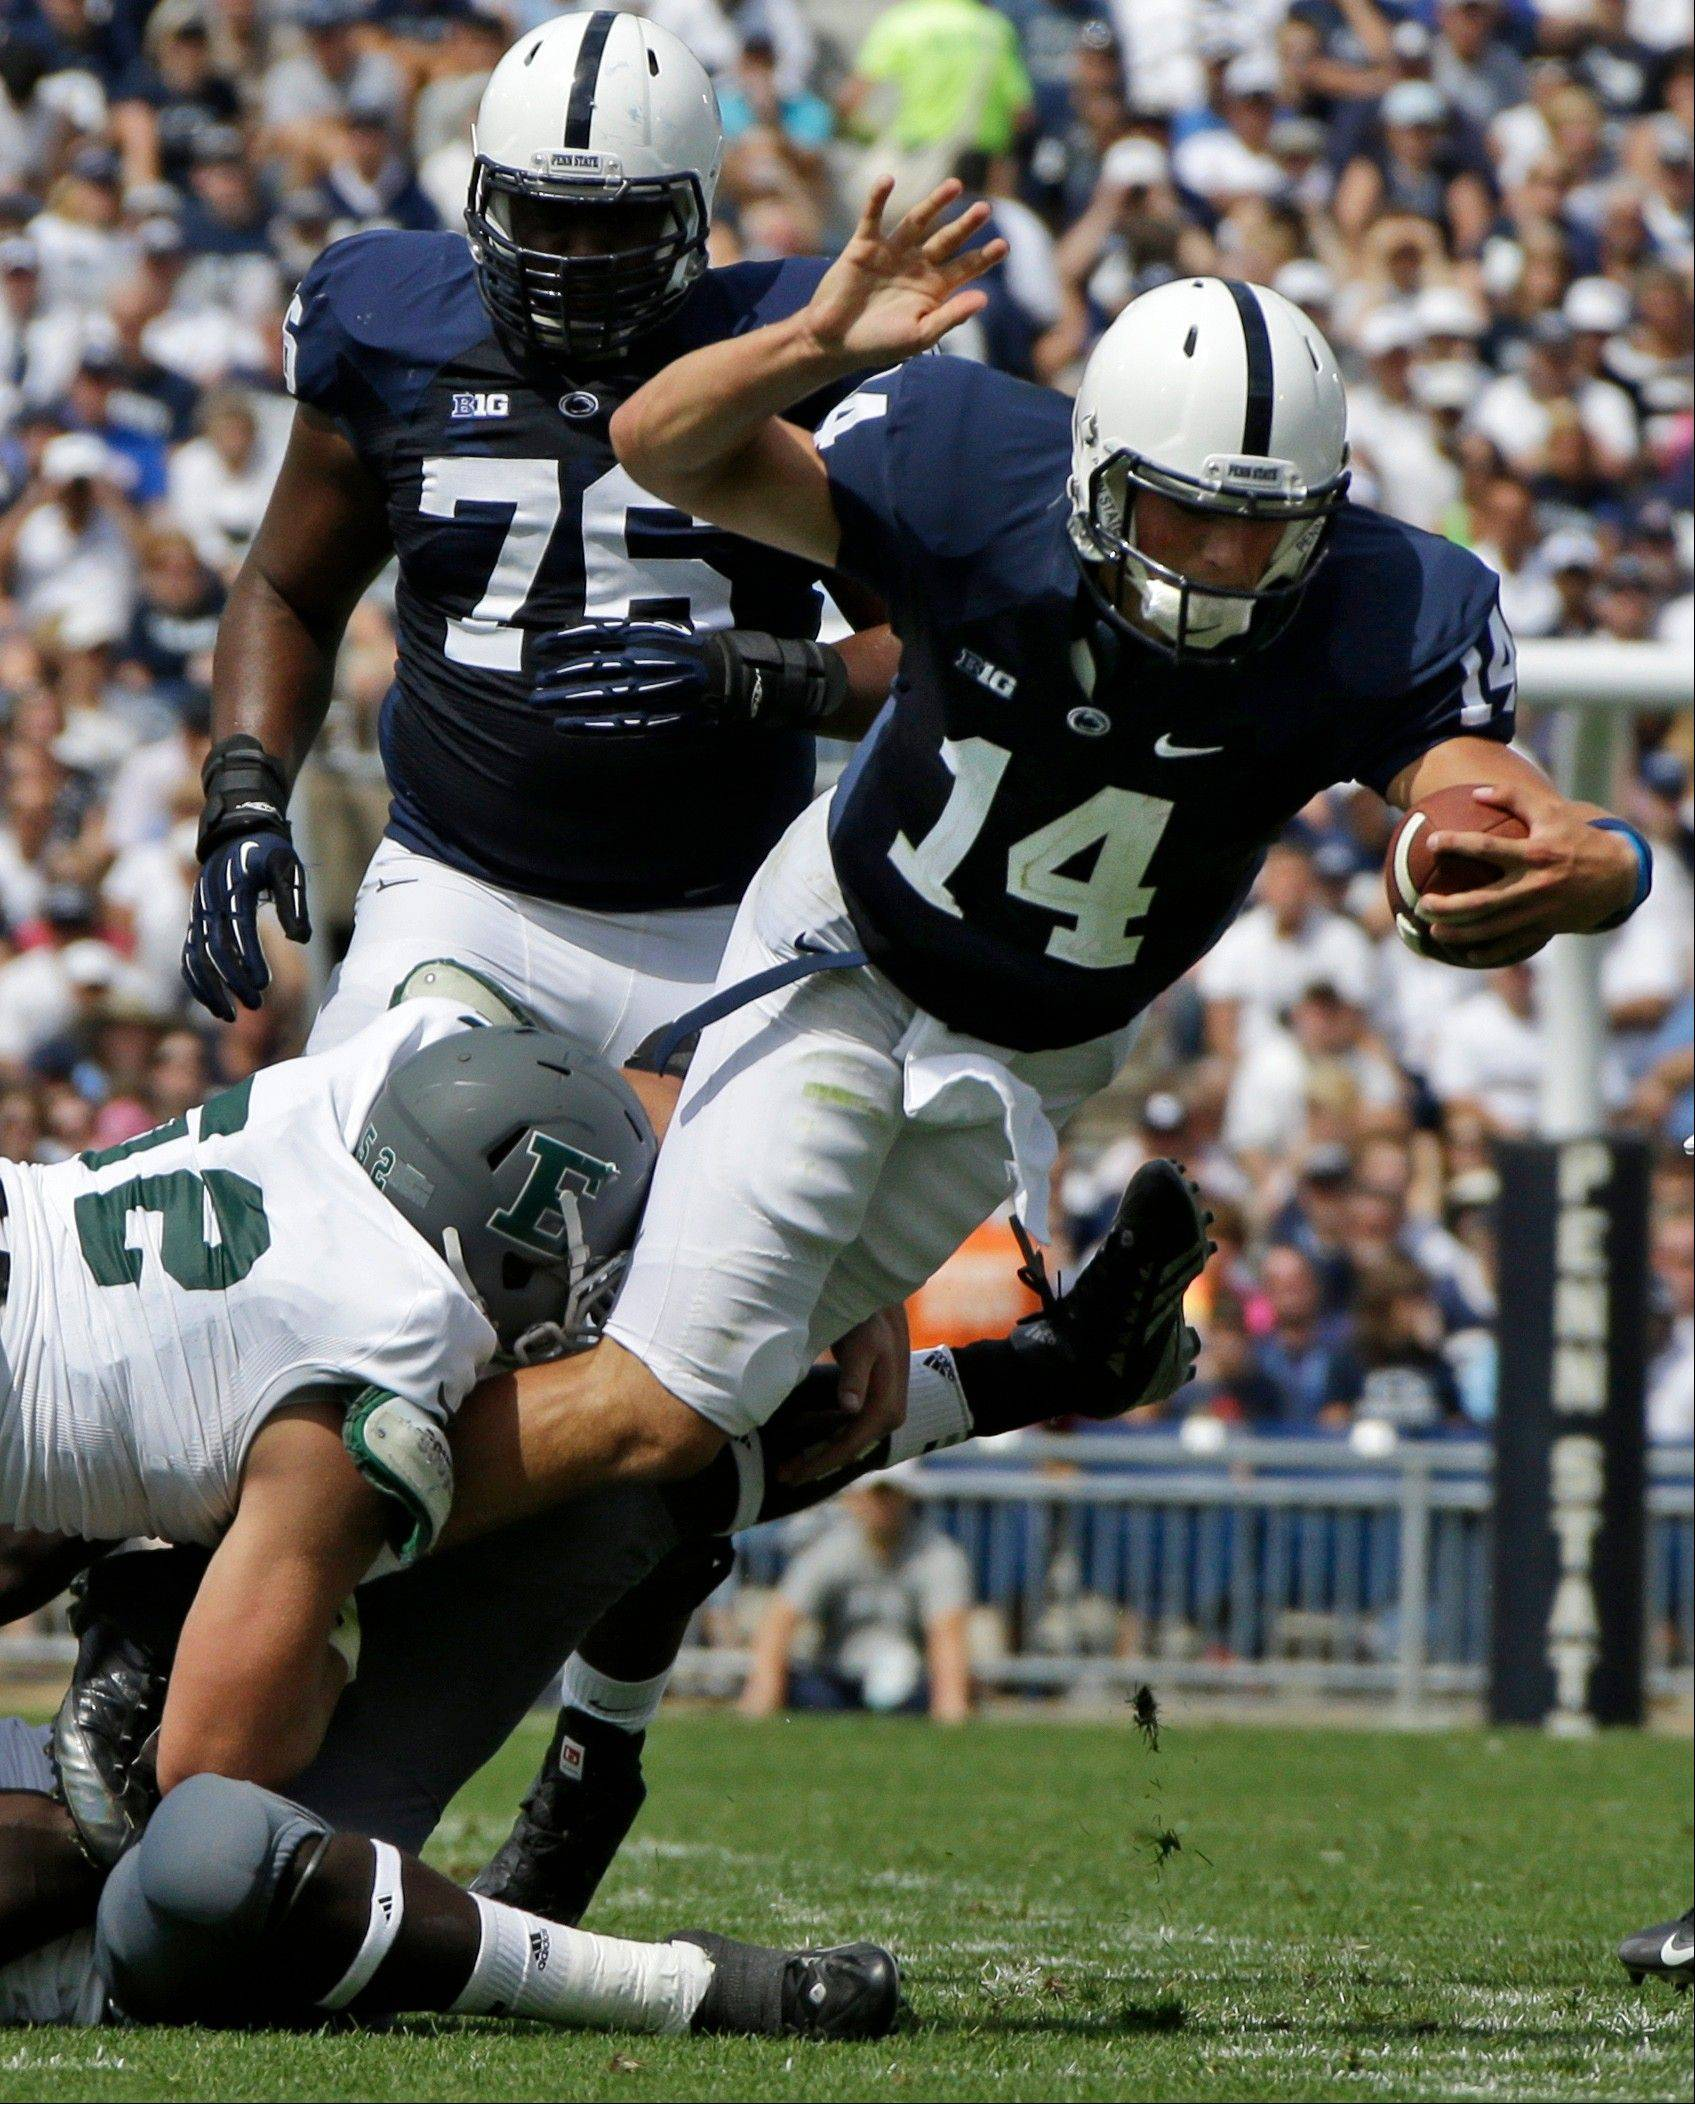 Penn State cruises past Eastern Michigan